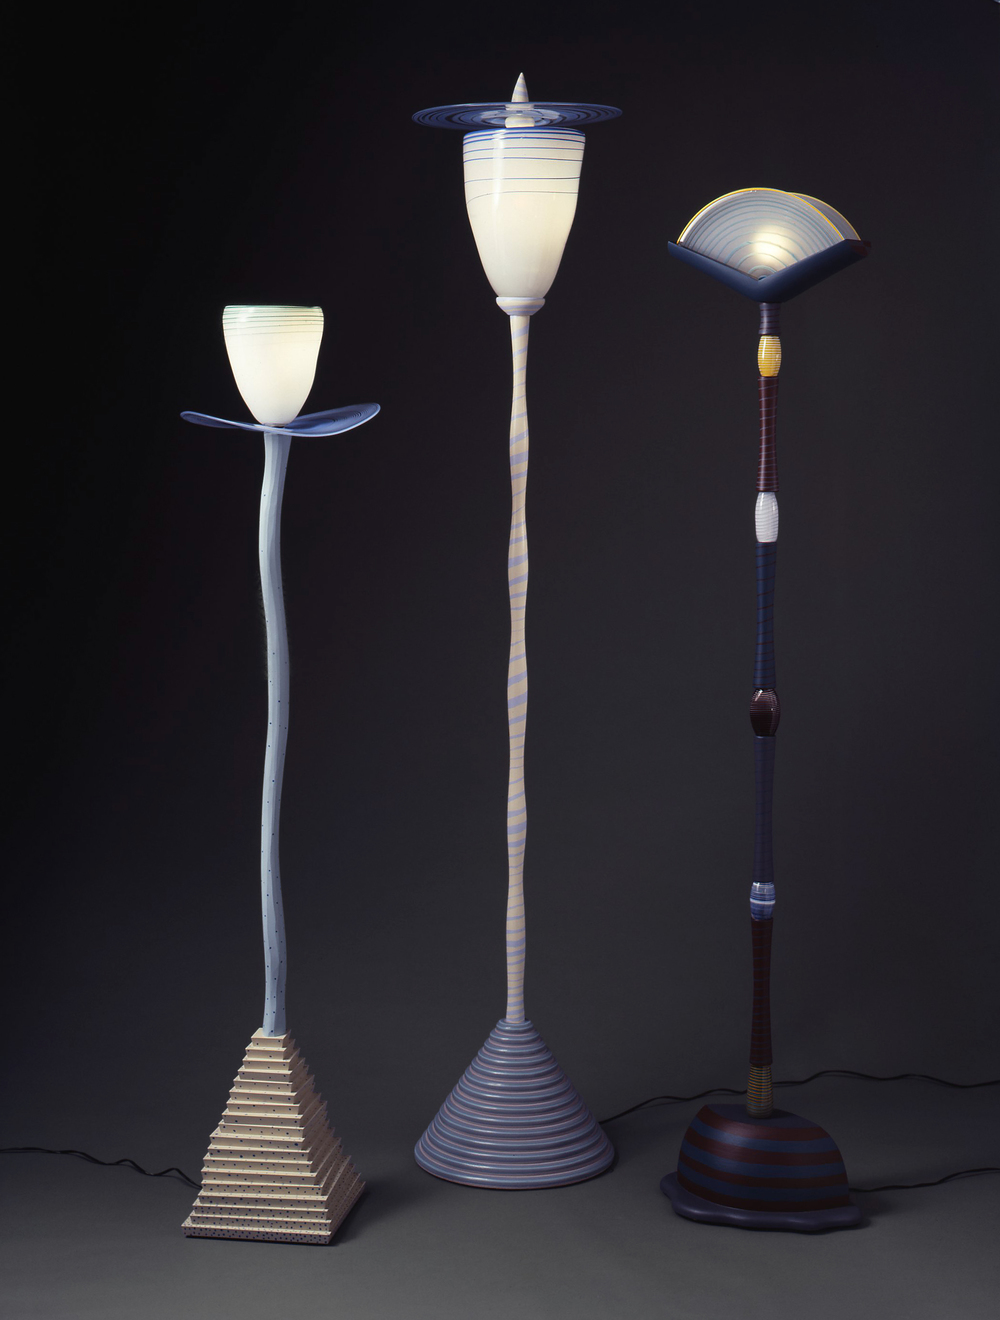 Lamps: (left to right) Cowboy Lamp, Streetlamp, Boat/Egg Lamp  I  Tom Loeser and Hank Murta Adams  I  1983  I  glass, wood, paint